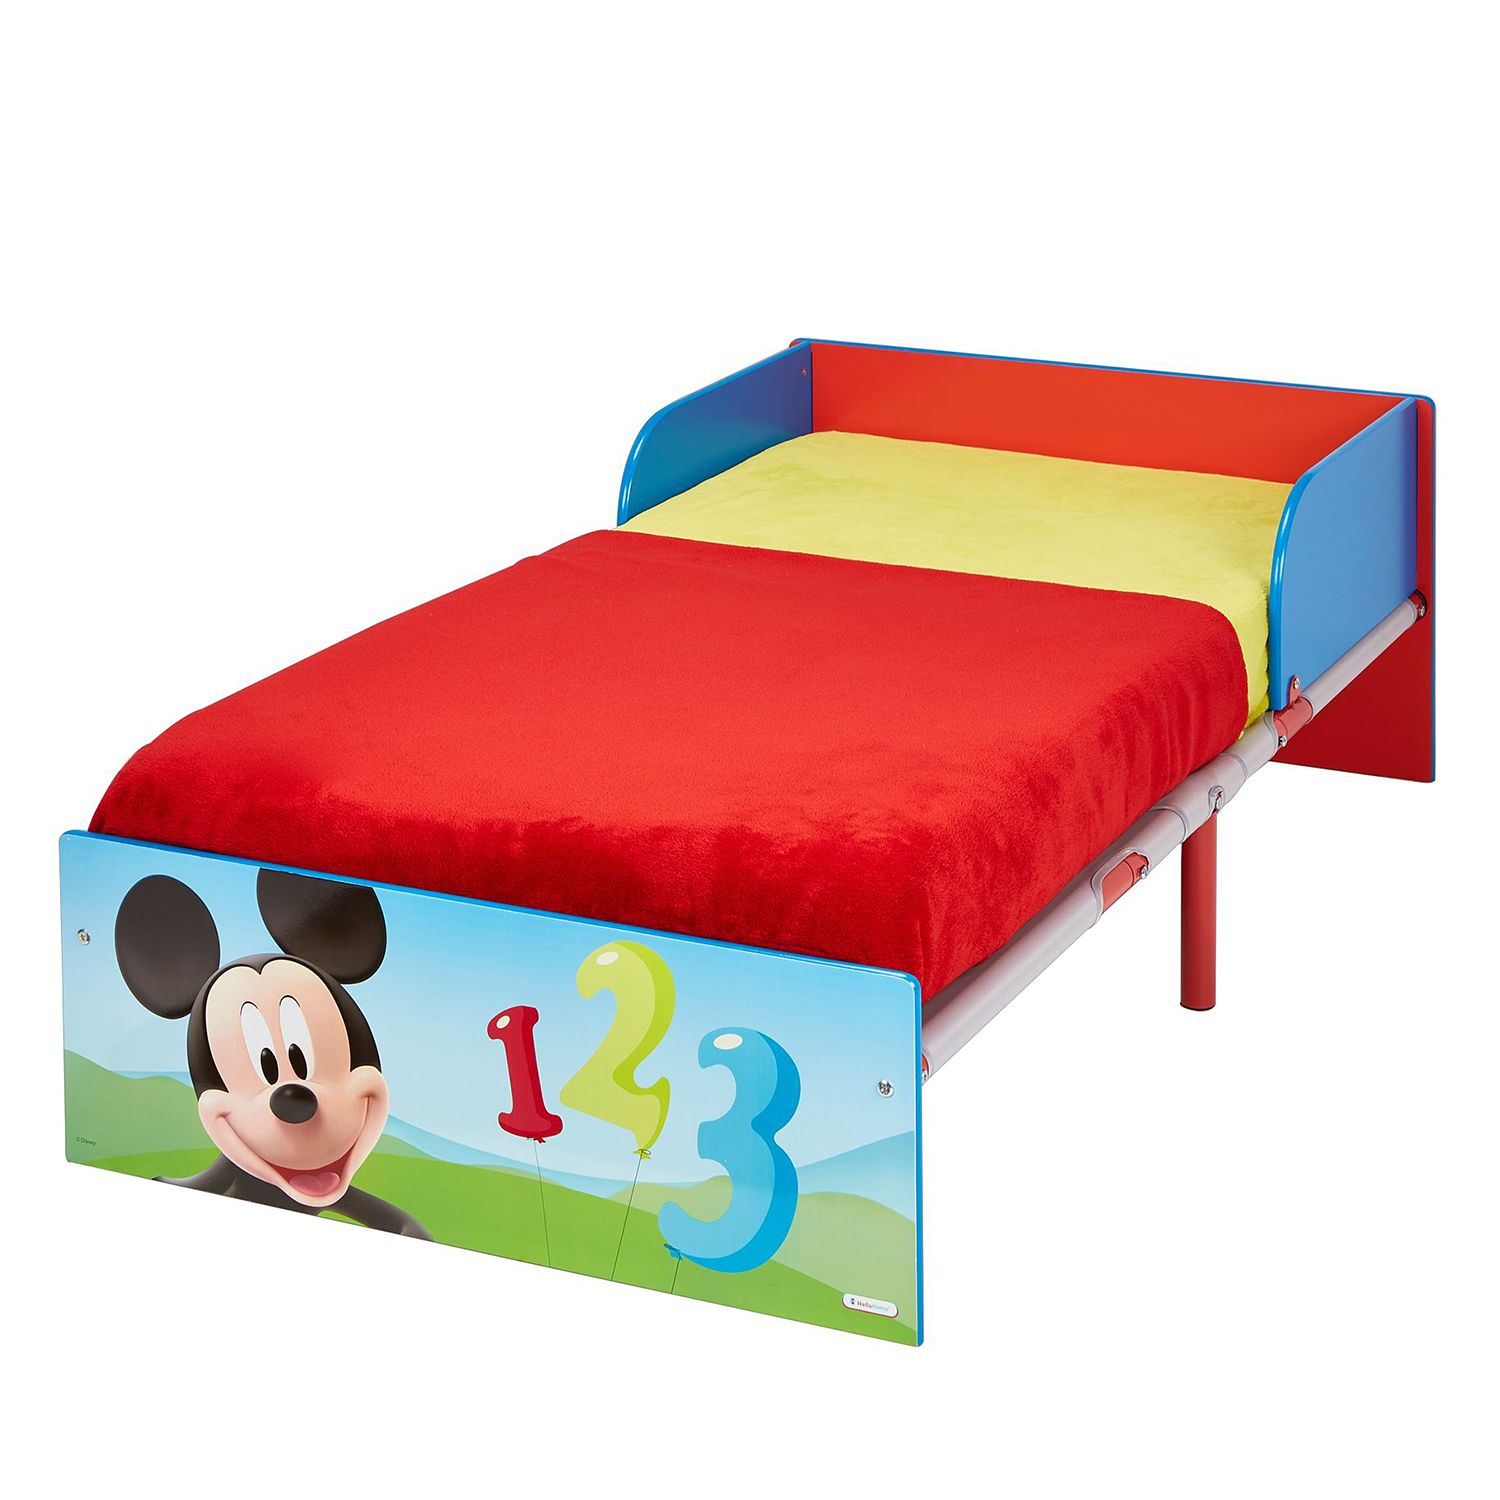 mickey mouse bett preisvergleiche erfahrungsberichte. Black Bedroom Furniture Sets. Home Design Ideas